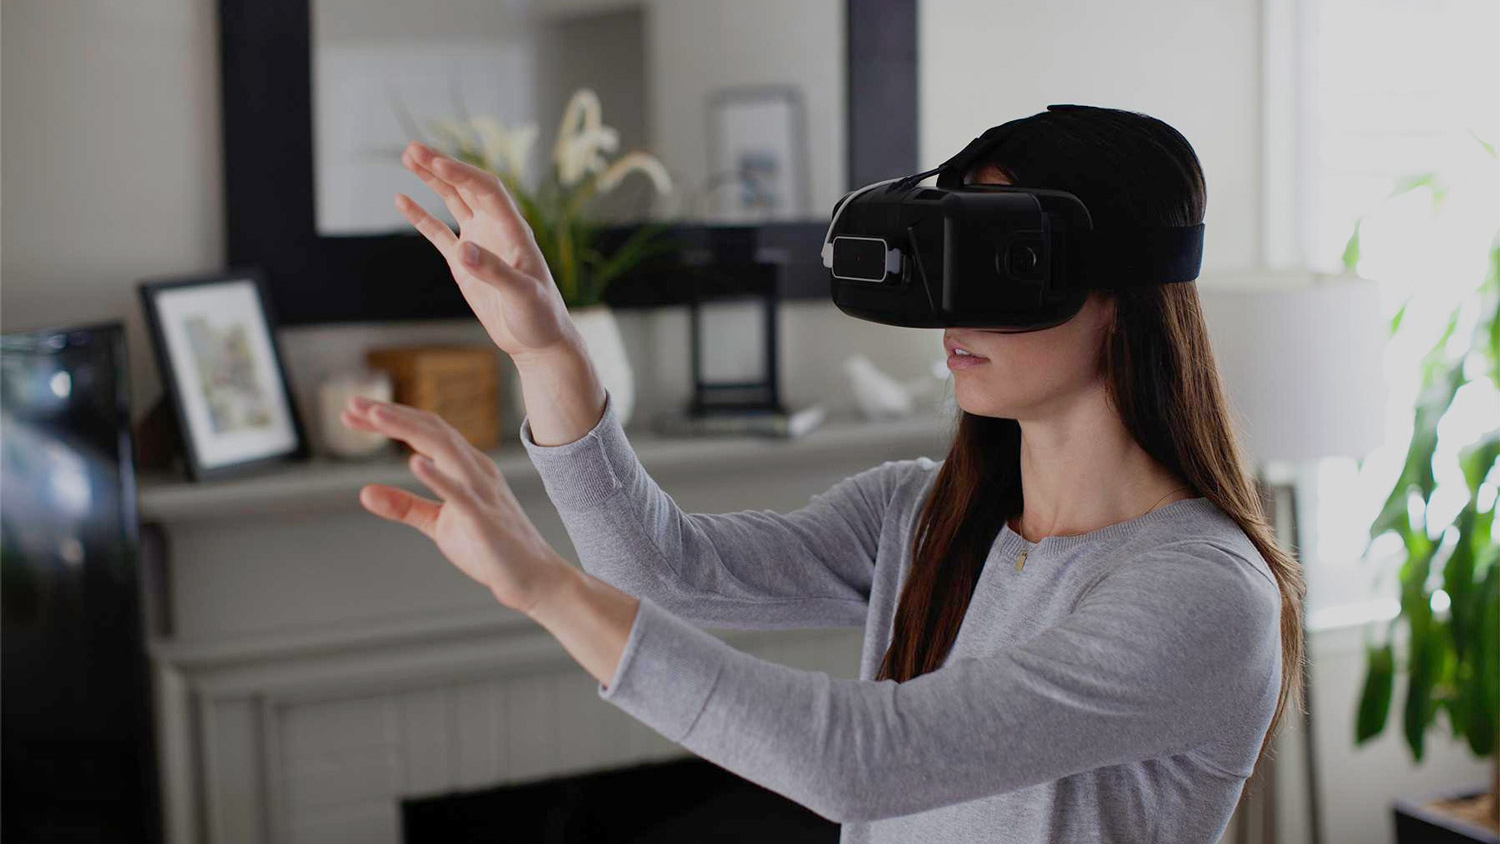 woman using a VR headset for VR gaming